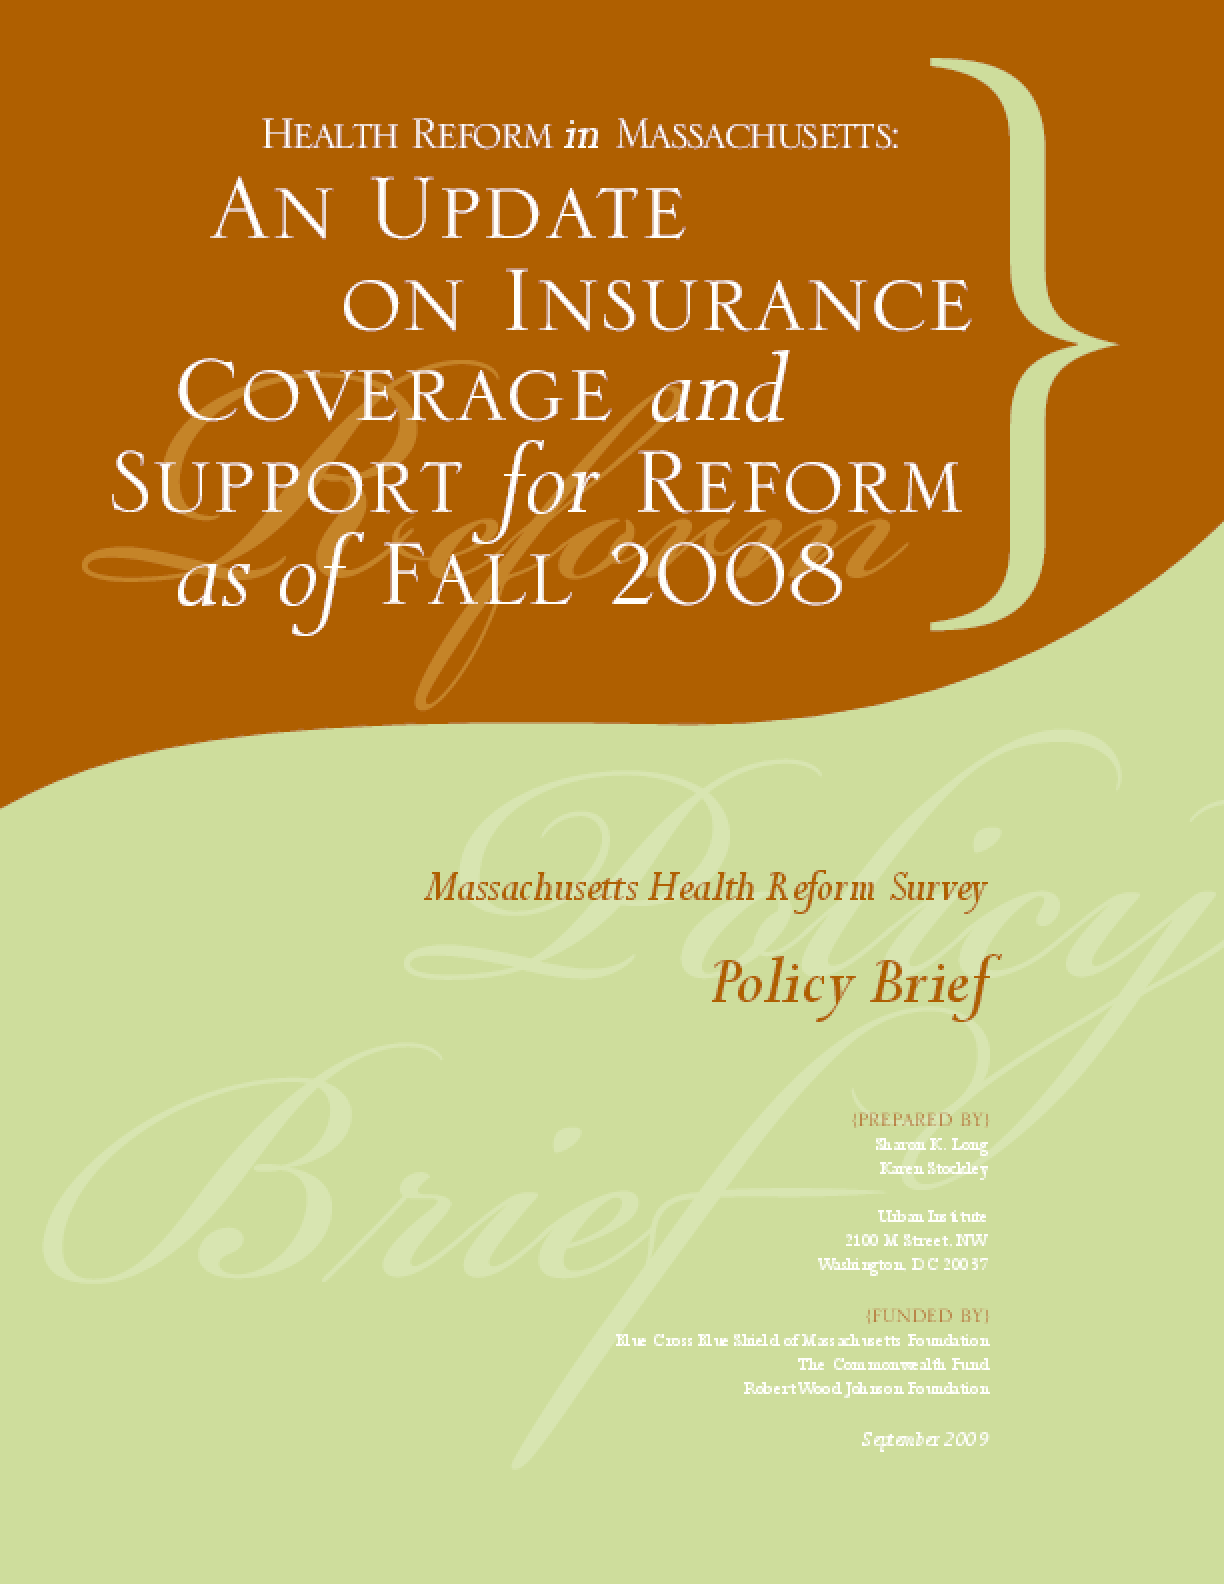 Health Reform in Massachusetts: An Update on Insurance Coverage and Support for Reform as of Fall 2008